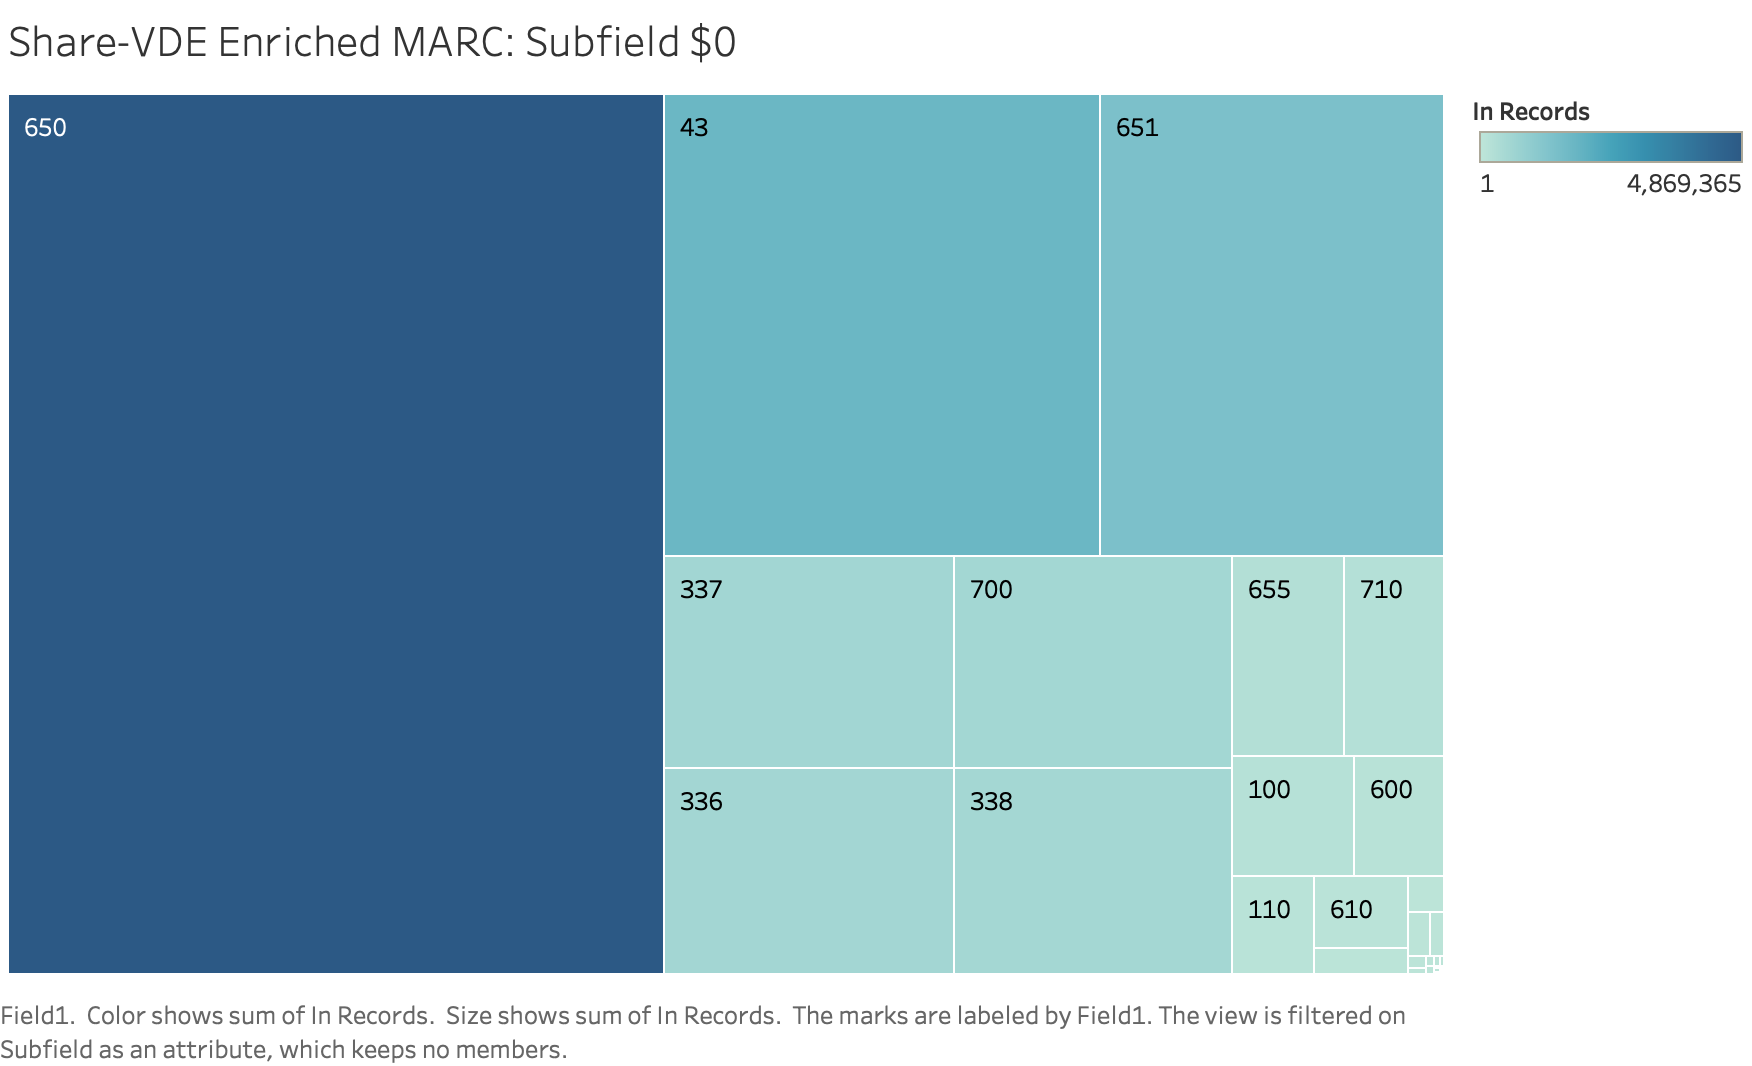 Figure 9. $0 URIs from Penn Share-VDE enriched MARC. Source: Author